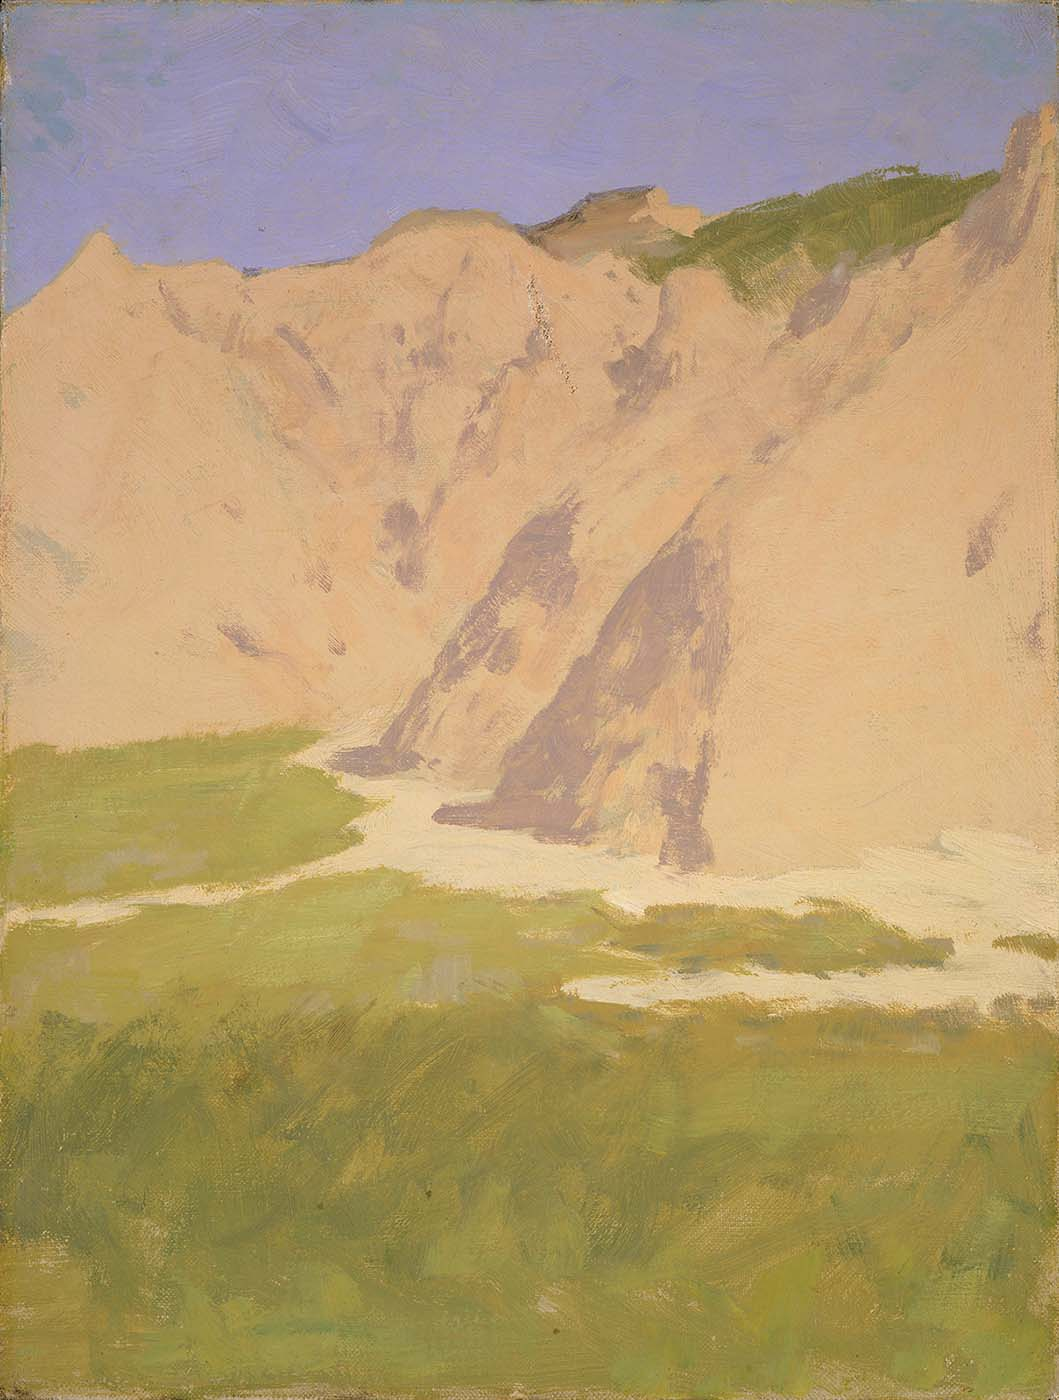 Frederic Remington (1861-1909). Untitled (sketch of barren mountains). Gift of The Coe Foundation. 17.67